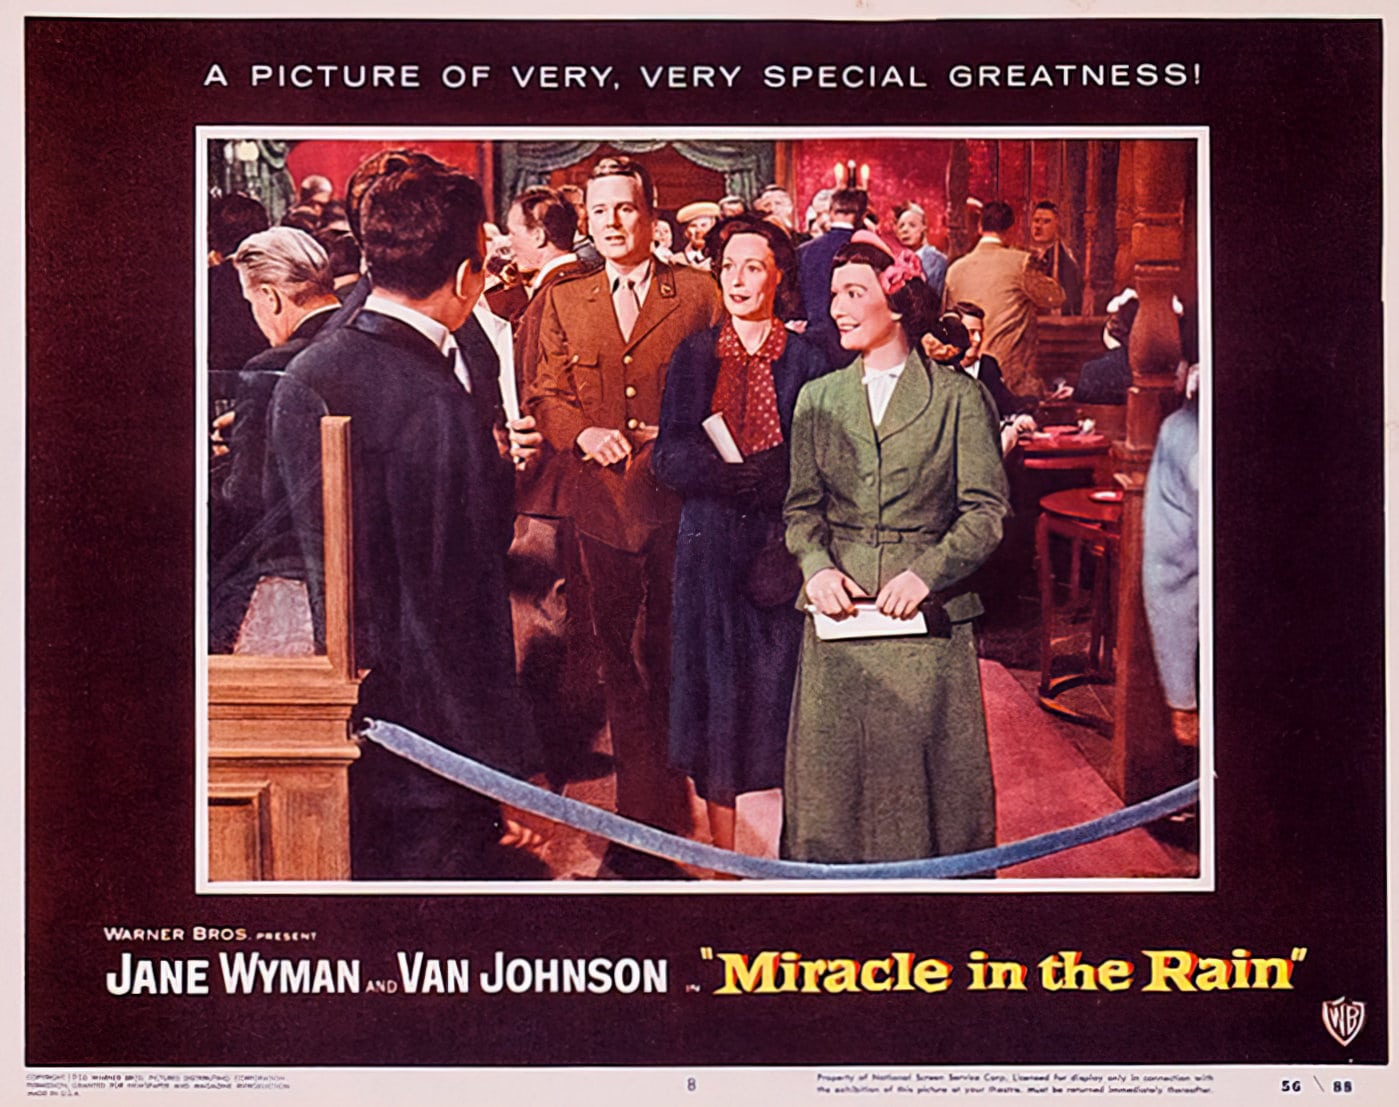 Miracle in the Rain movie lobby posters from 1956 (1)